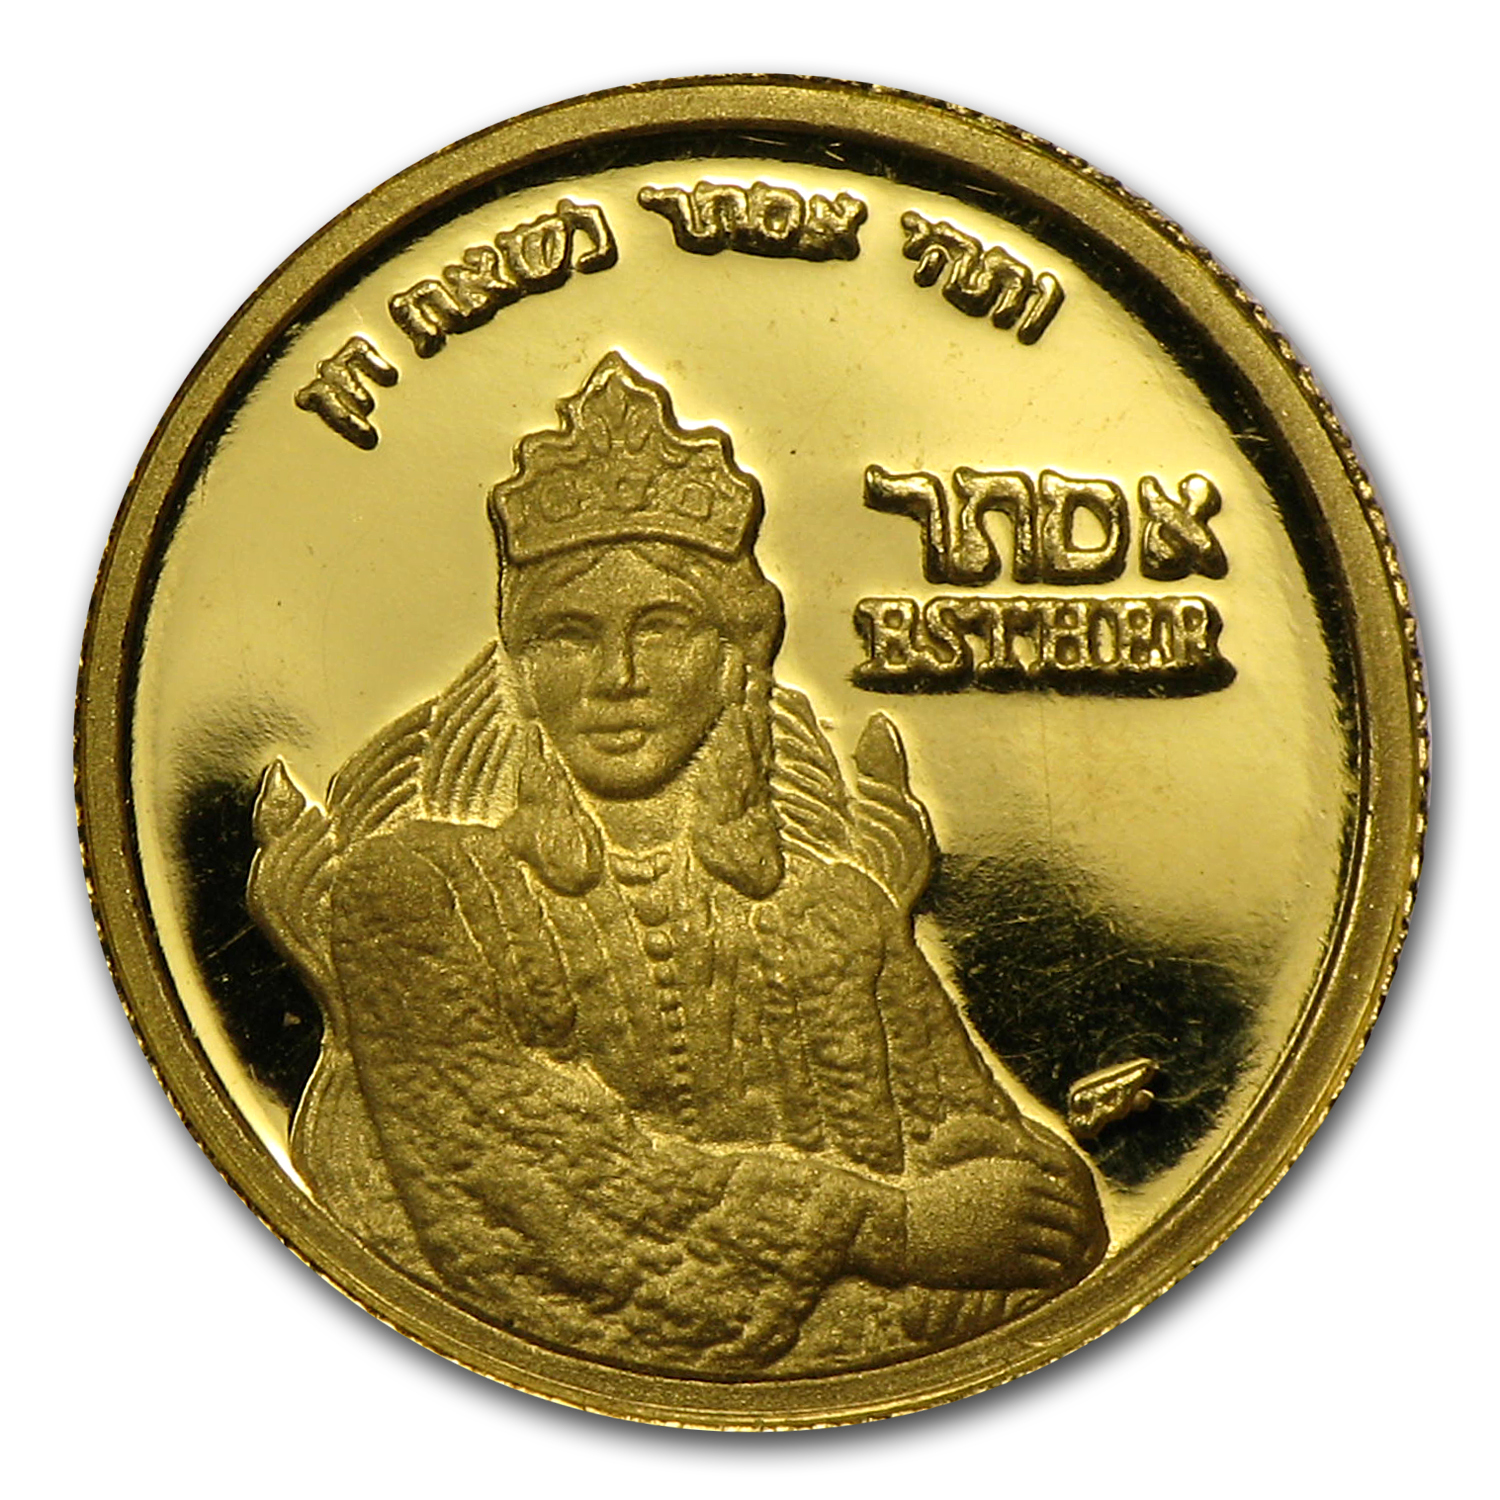 2011 Israel Pure Gold Medal Queen Esther (AGW 1/25 oz)